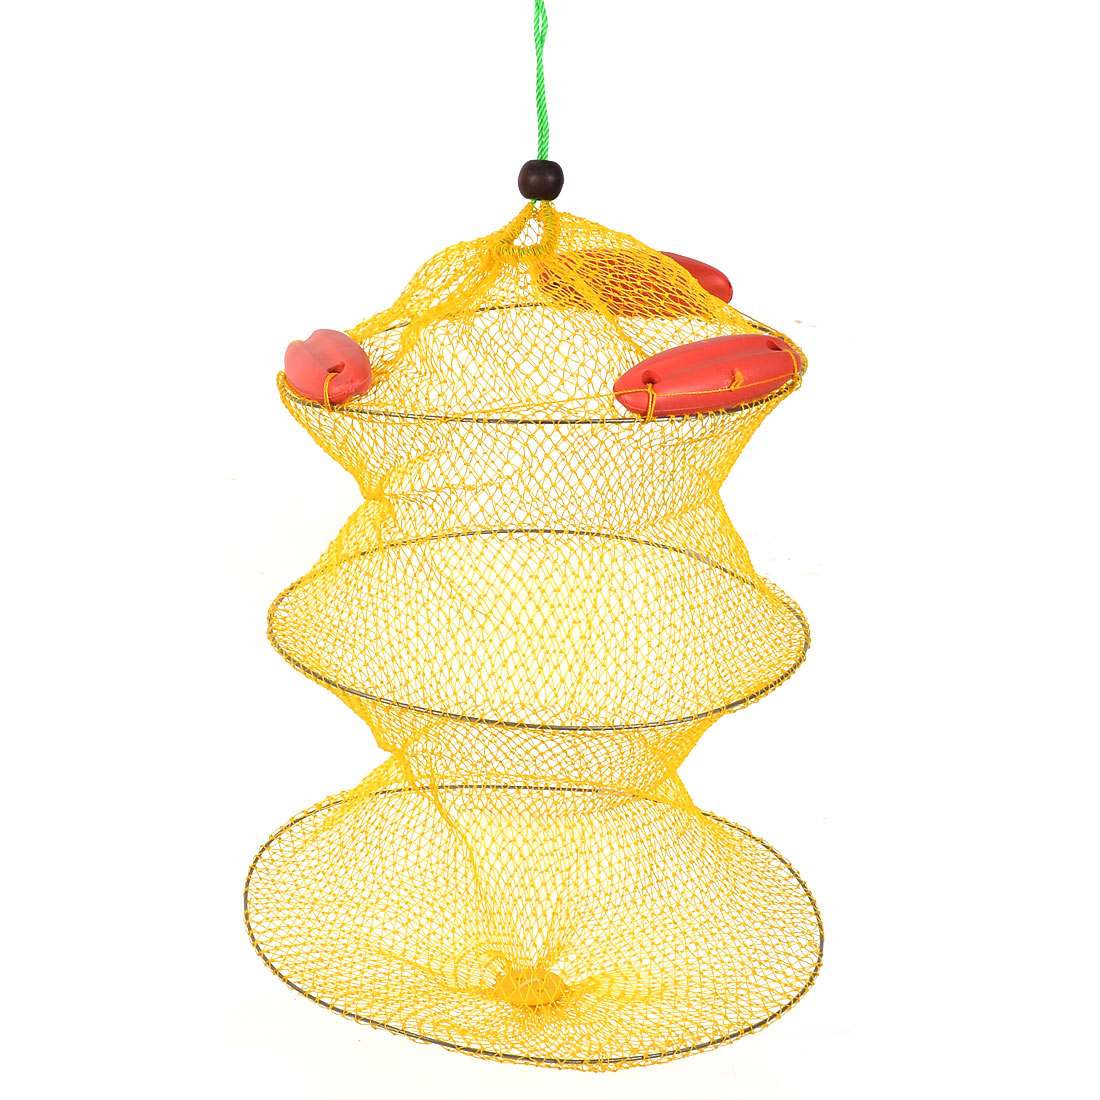 Lobster Crab Crawfish Shrimp Cage Fishing Keep Net Yellow Red